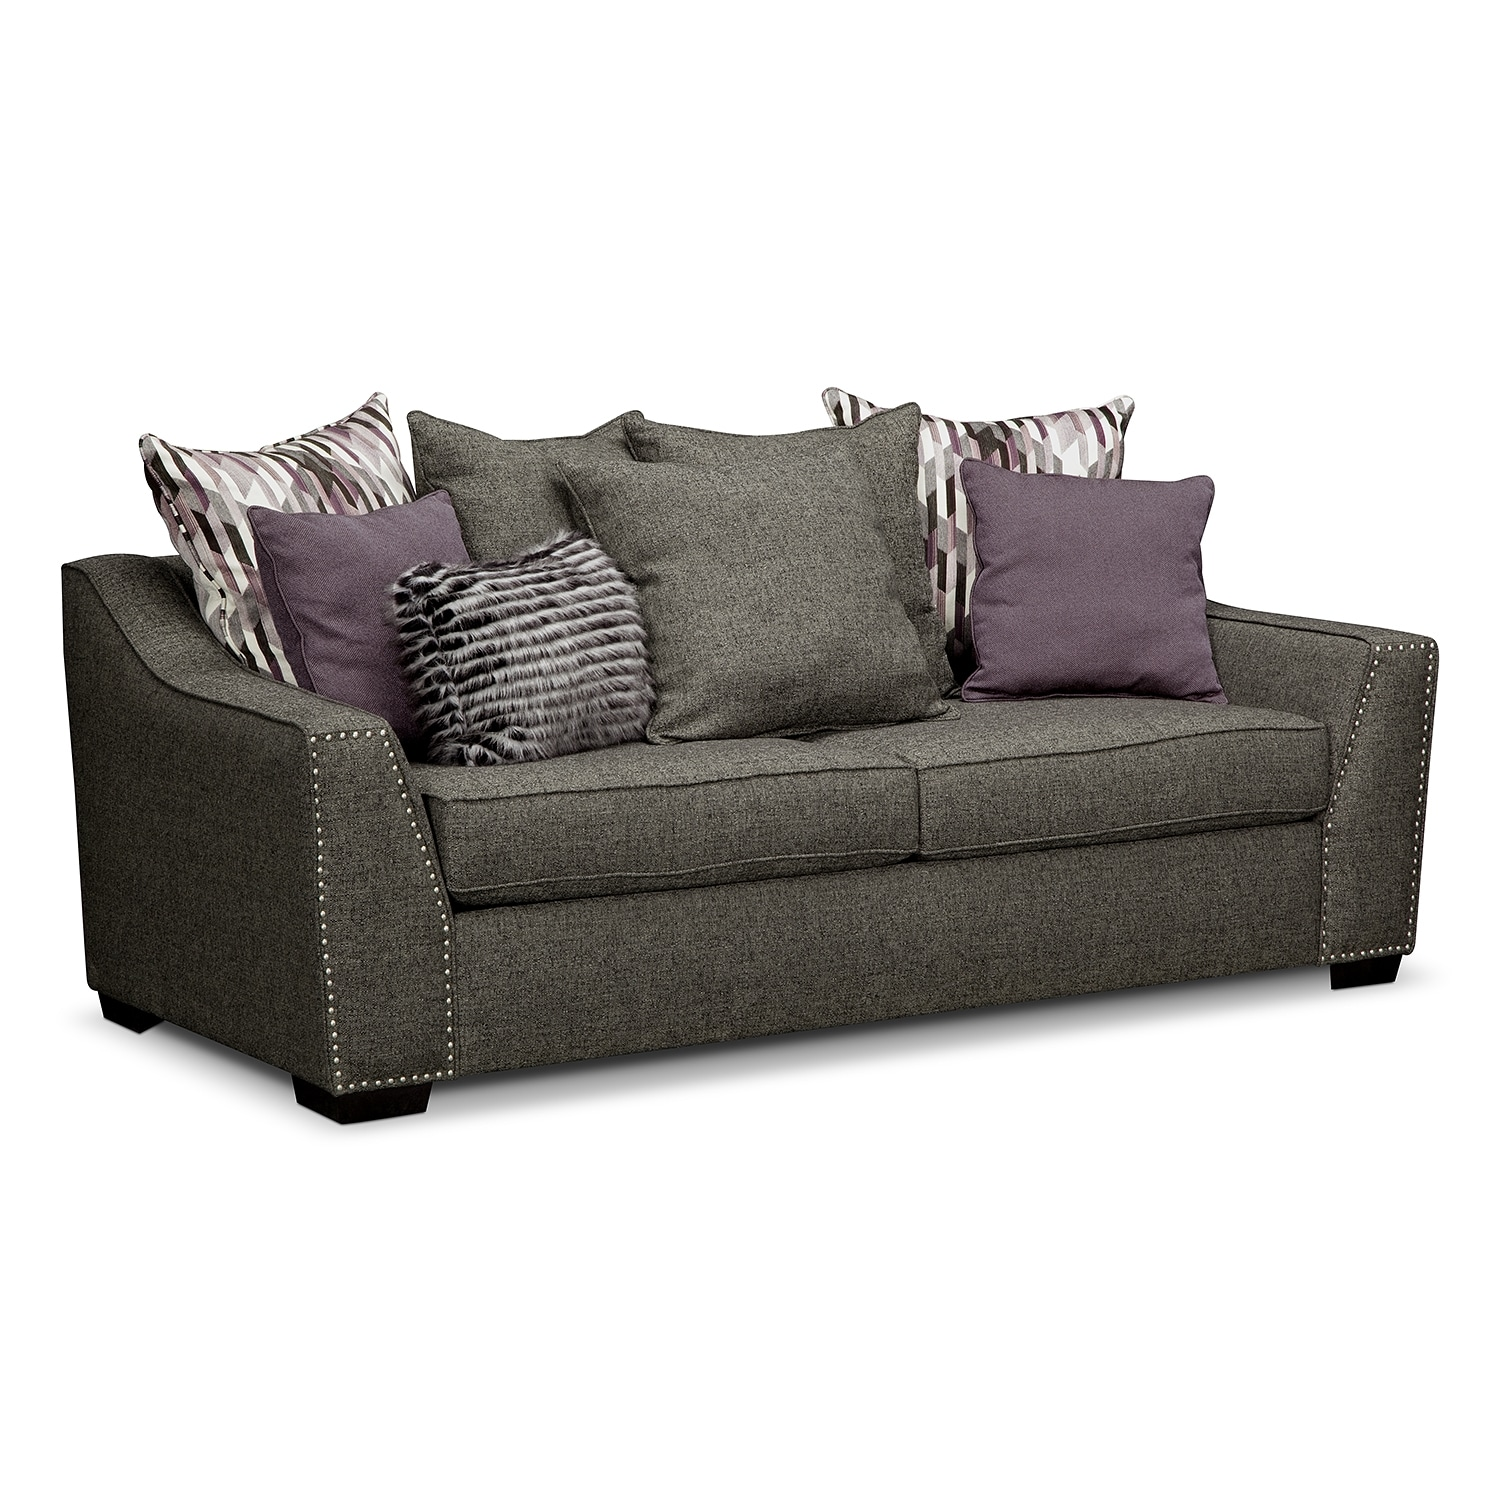 Living Room Furniture - Ritz Sofa - Gray